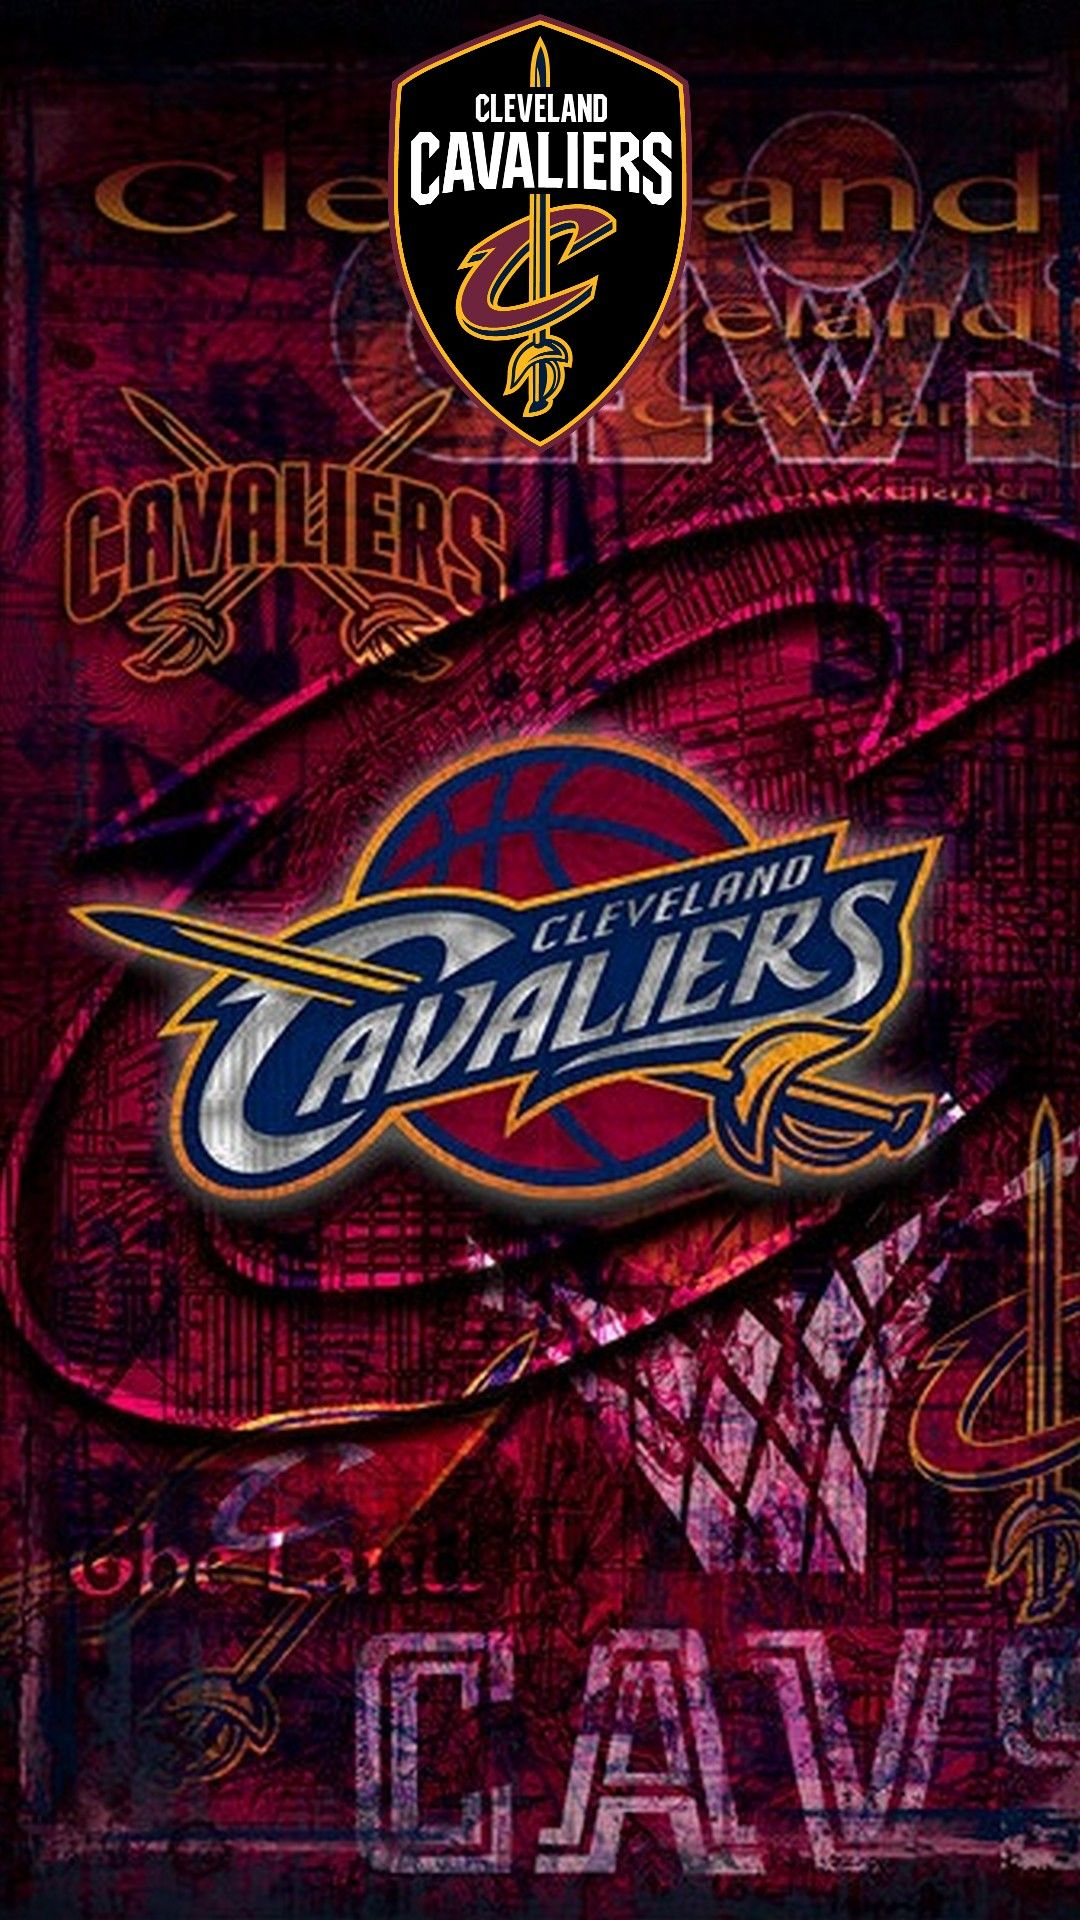 Cleveland Cavaliers Wallpaper Iphone Hd 2021 Basketball Wallpaper Cavaliers Wallpaper Basketball Wallpaper Sports Wallpapers